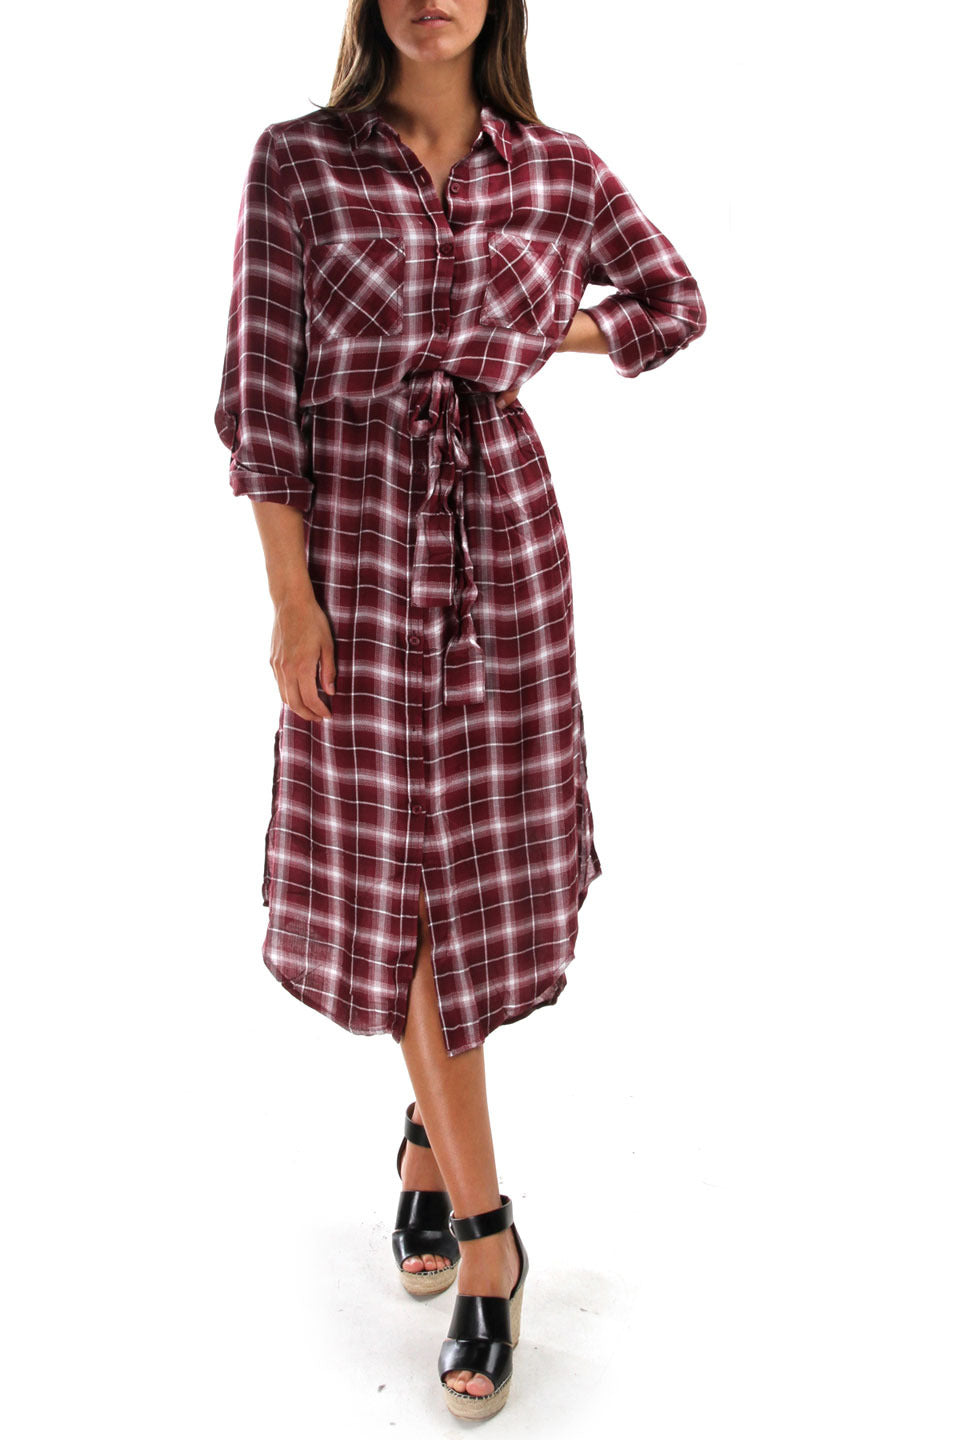 Merlot Plaid Shirt Dress